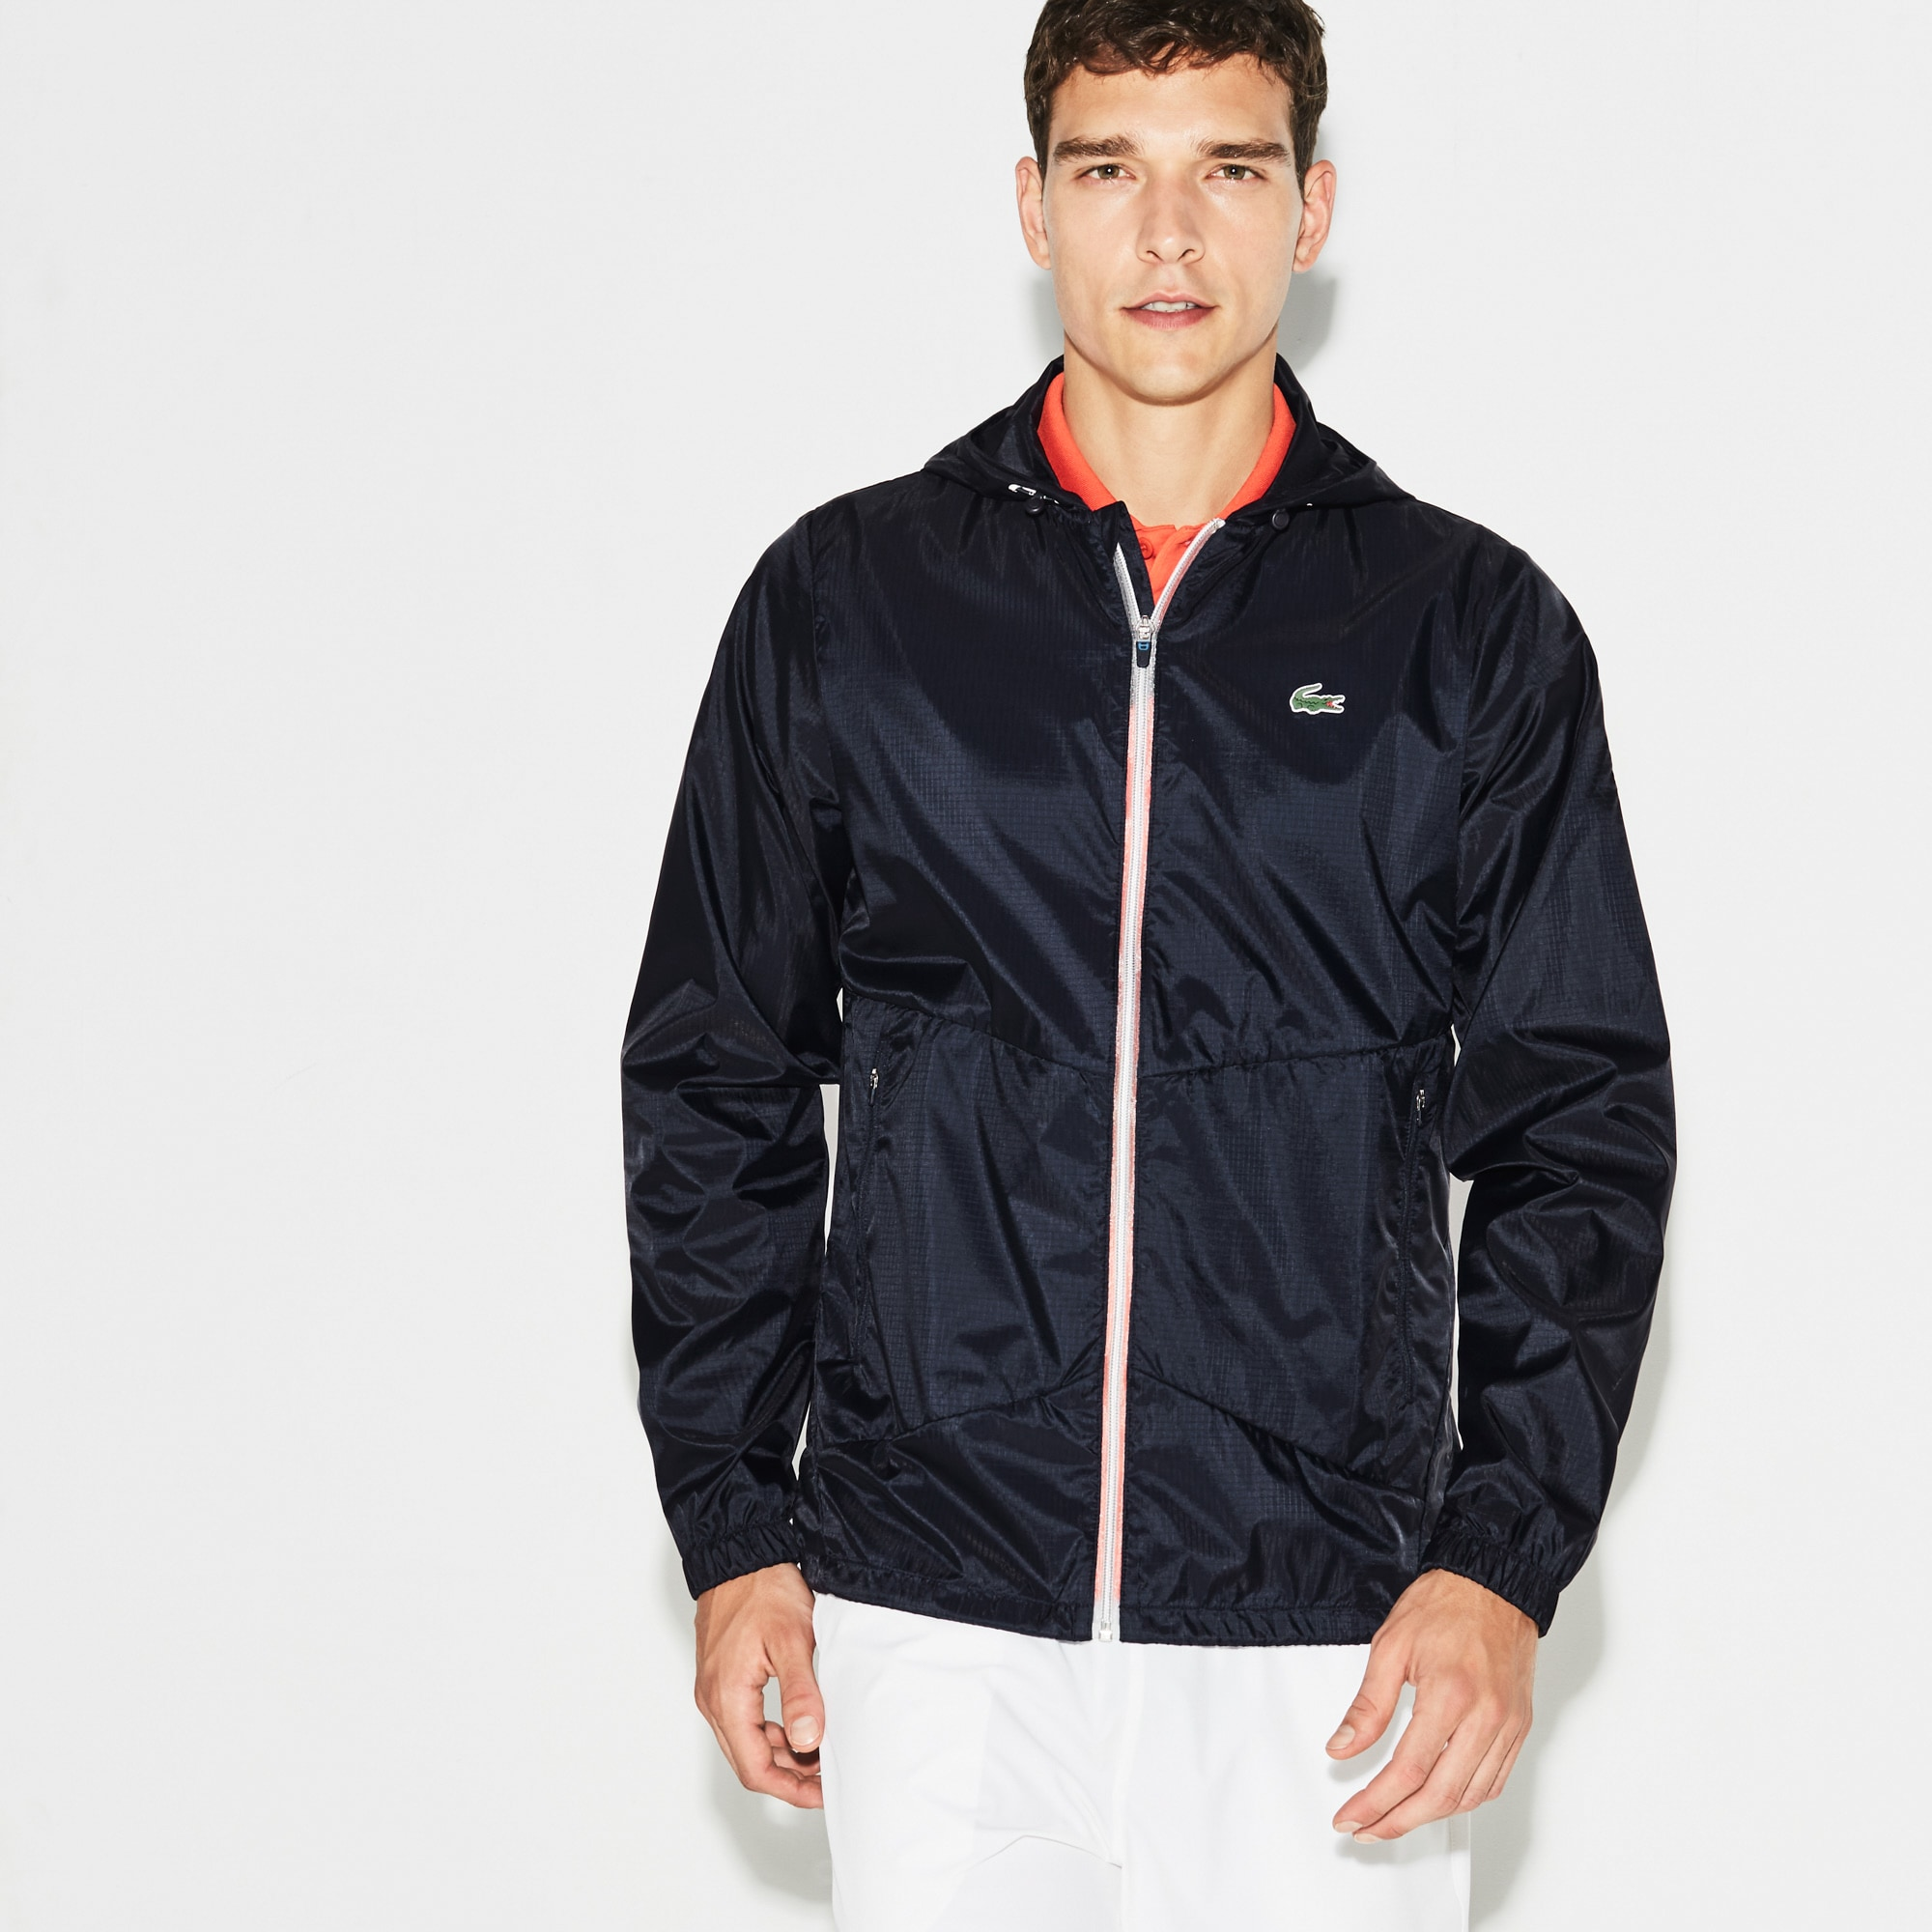 Jacket Lacoste Collection for Novak Djokovic - Exclusive Clay Edition